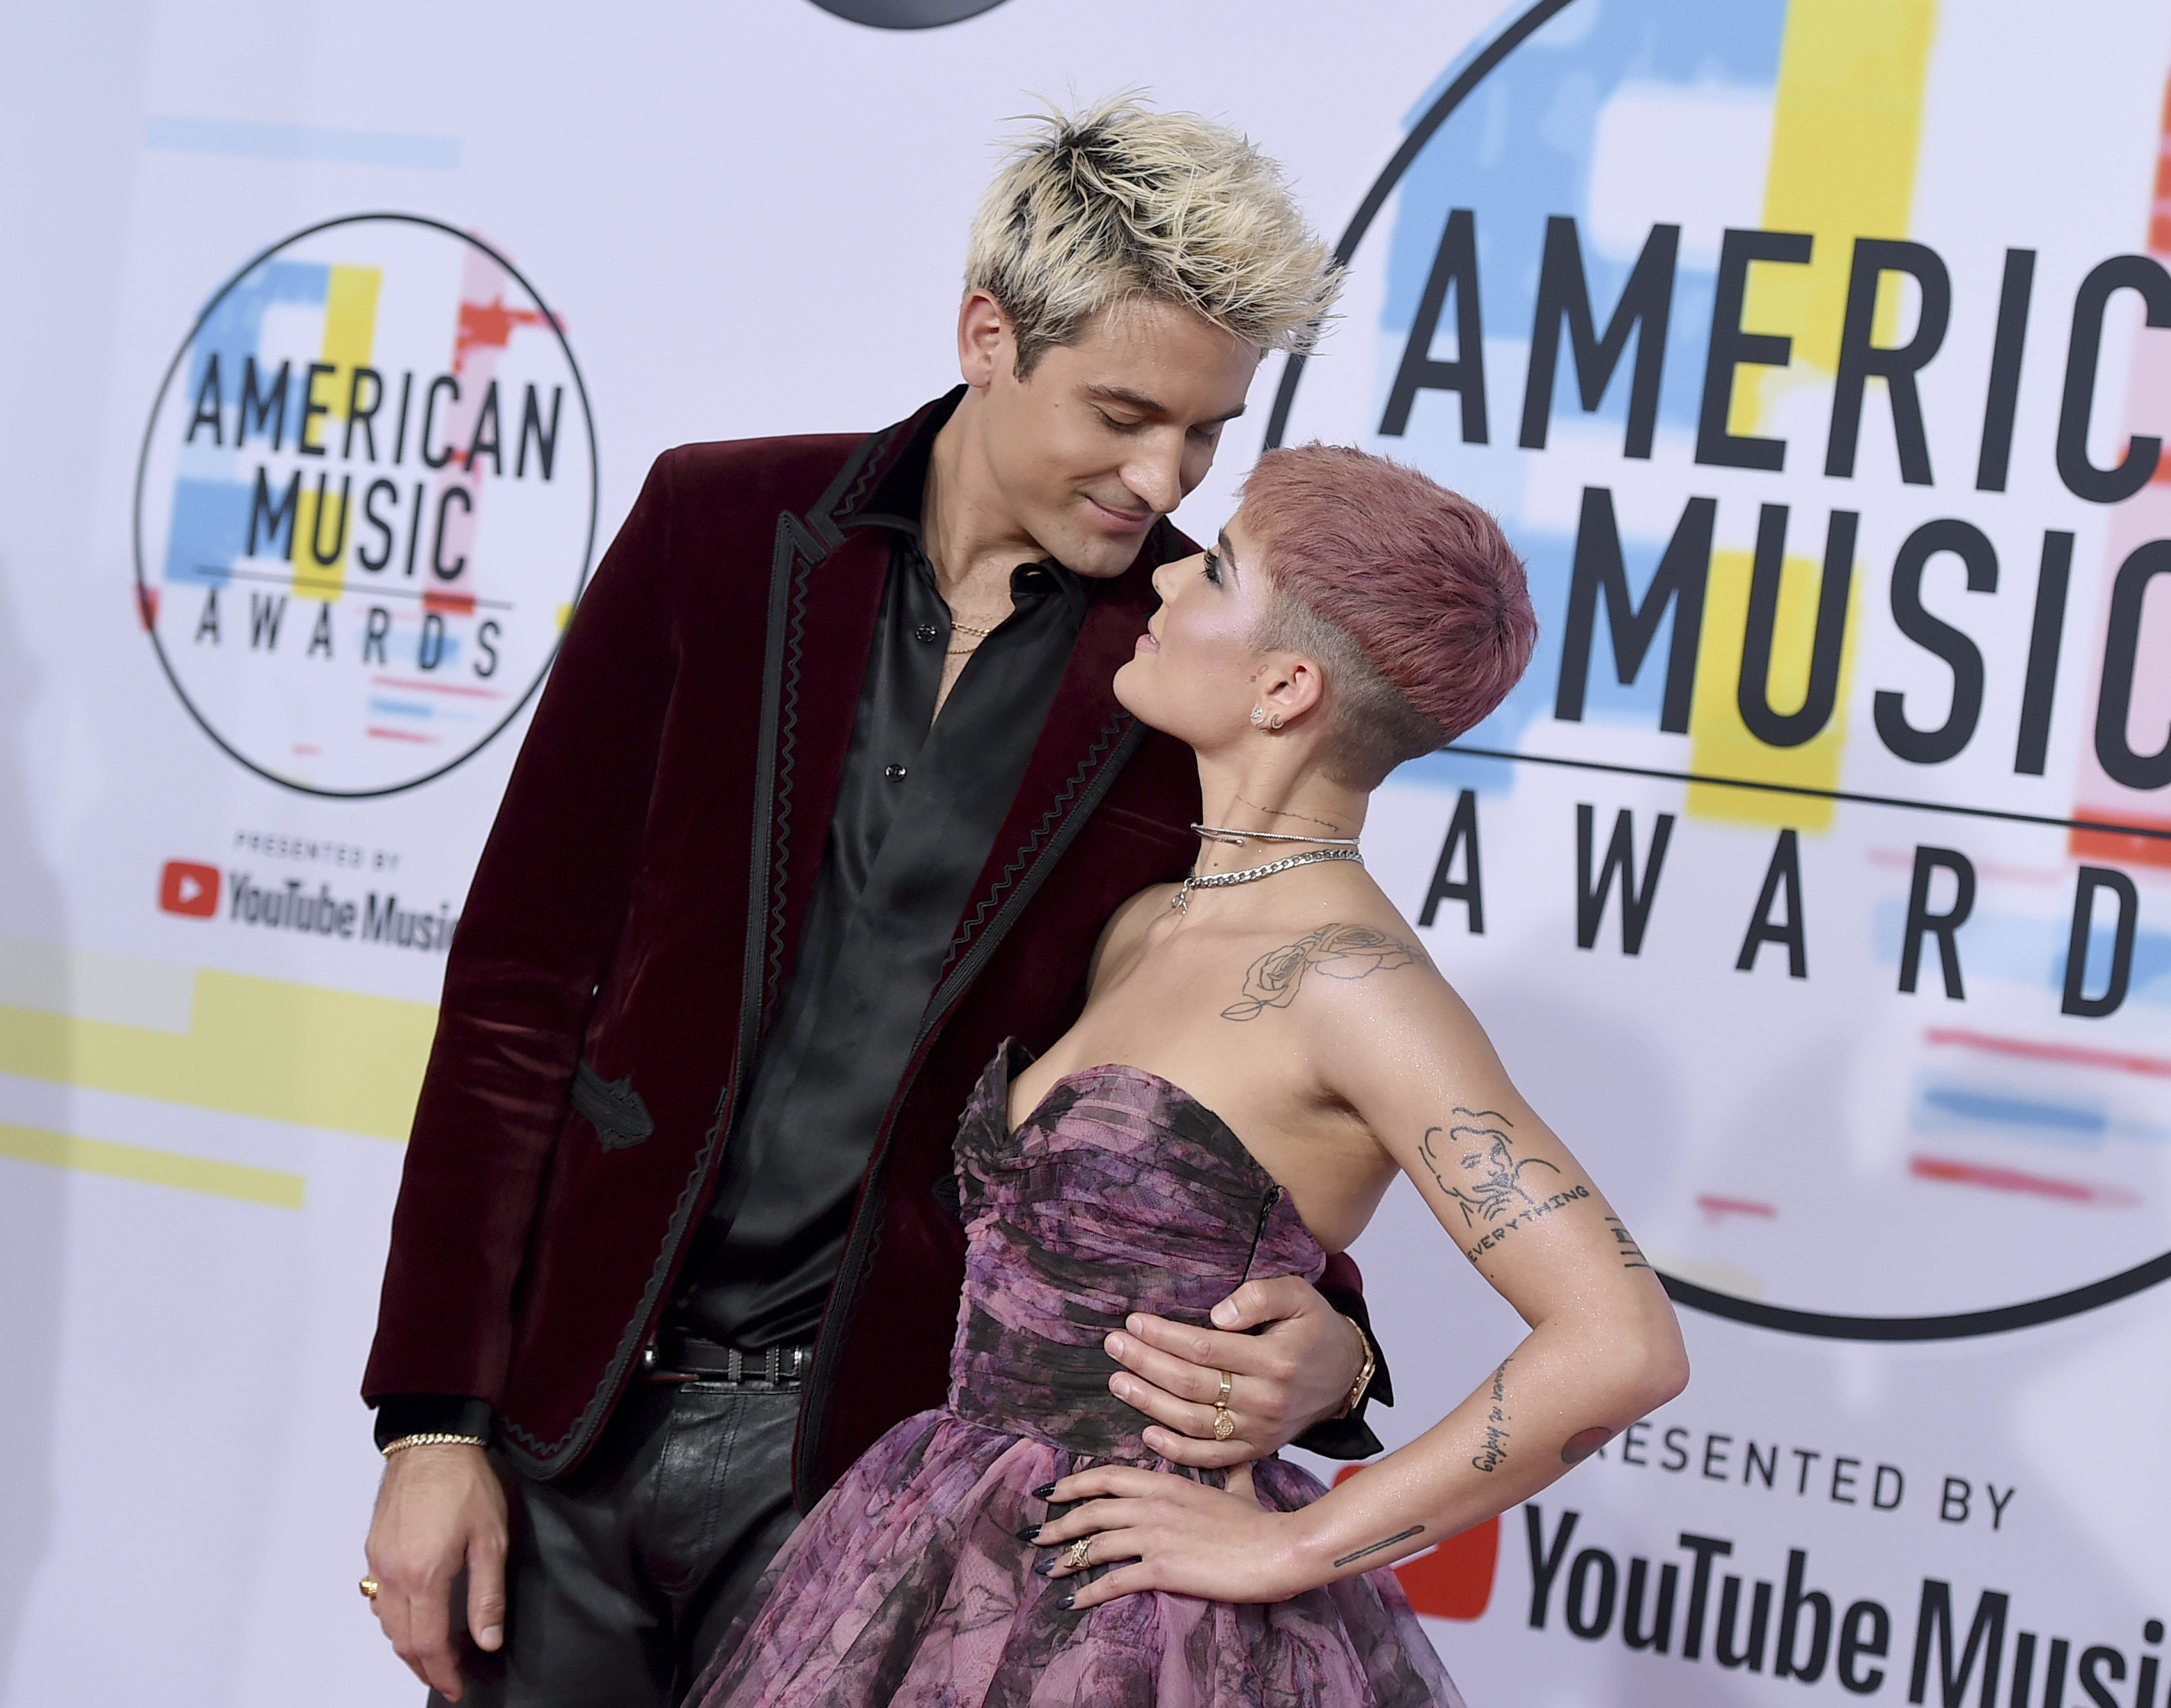 "<div class=""meta image-caption""><div class=""origin-logo origin-image none""><span>none</span></div><span class=""caption-text"">G-Eazy, left, and Halsey arrive at the American Music Awards on Tuesday, Oct. 9, 2018, at the Microsoft Theater in Los Angeles. (Jordan Strauss/Invision/AP)</span></div>"